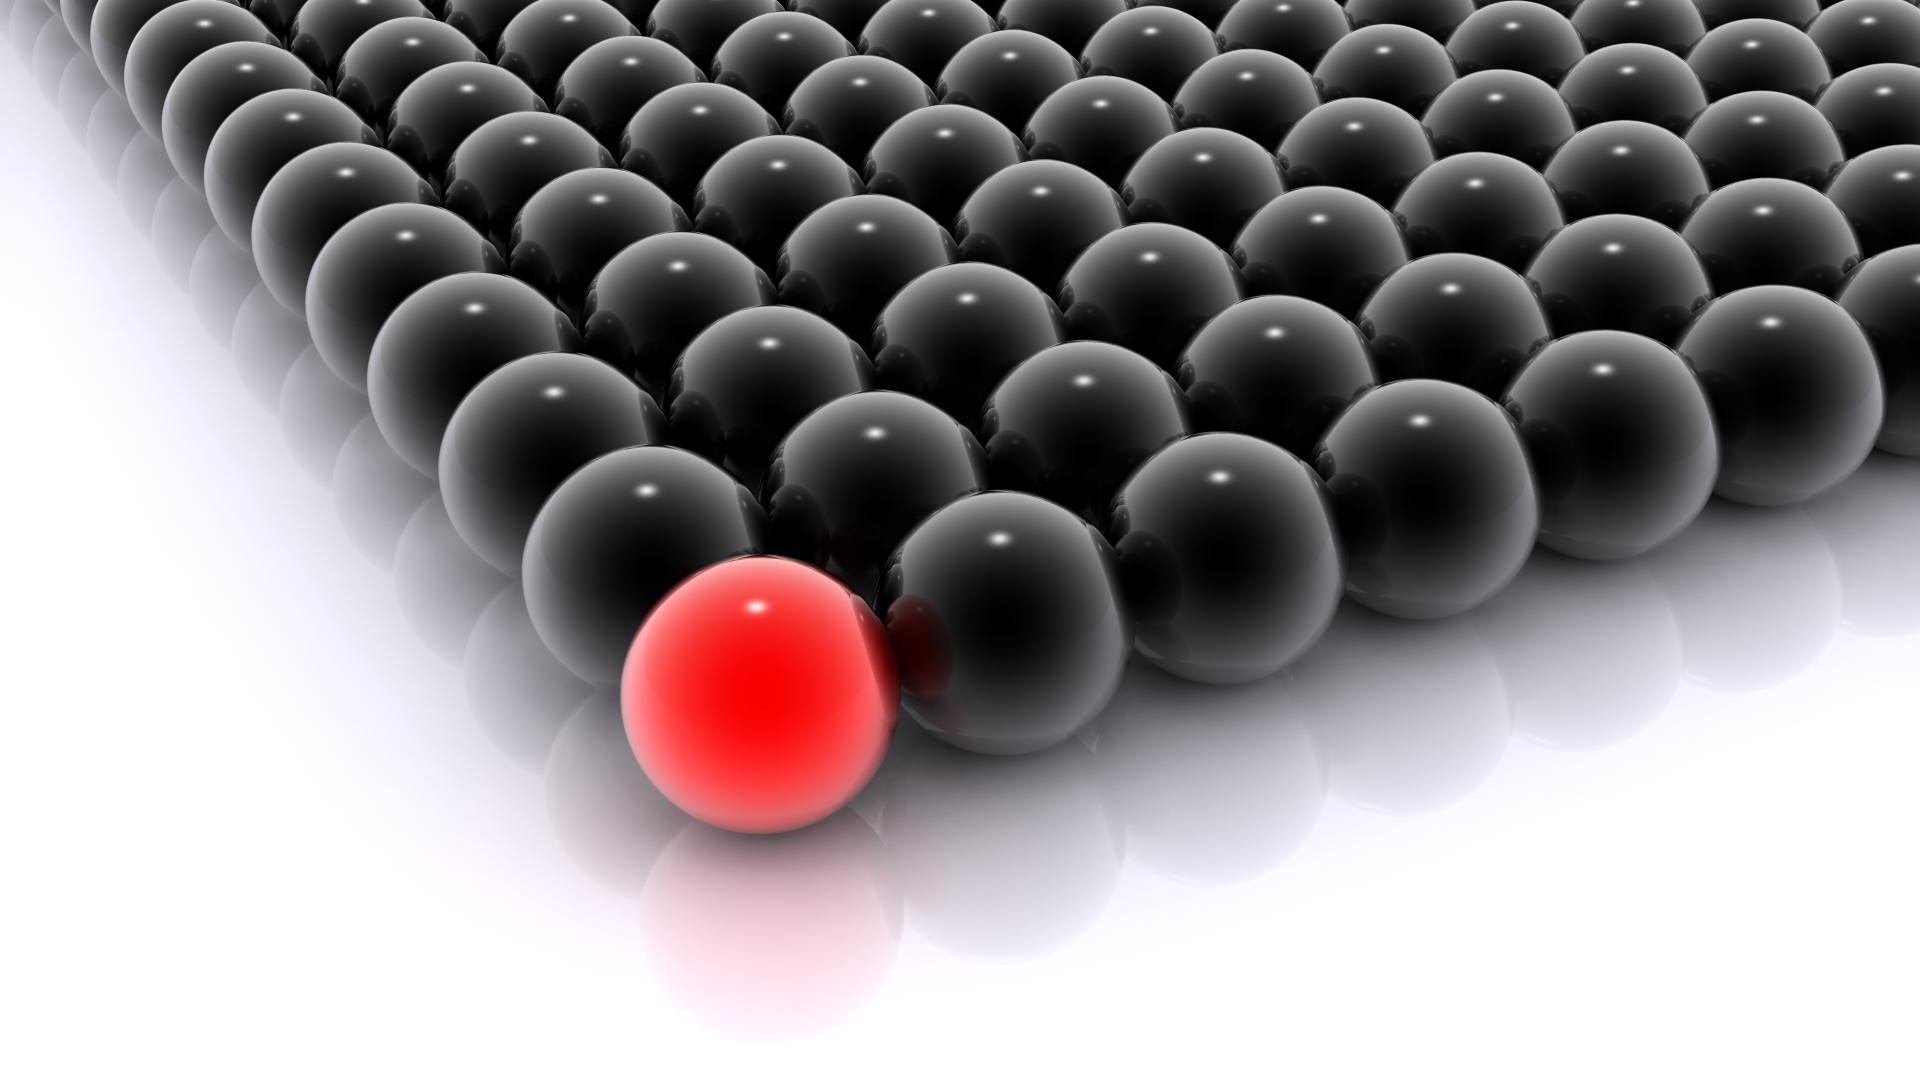 Glass balls black and red by pcchip on deviantart